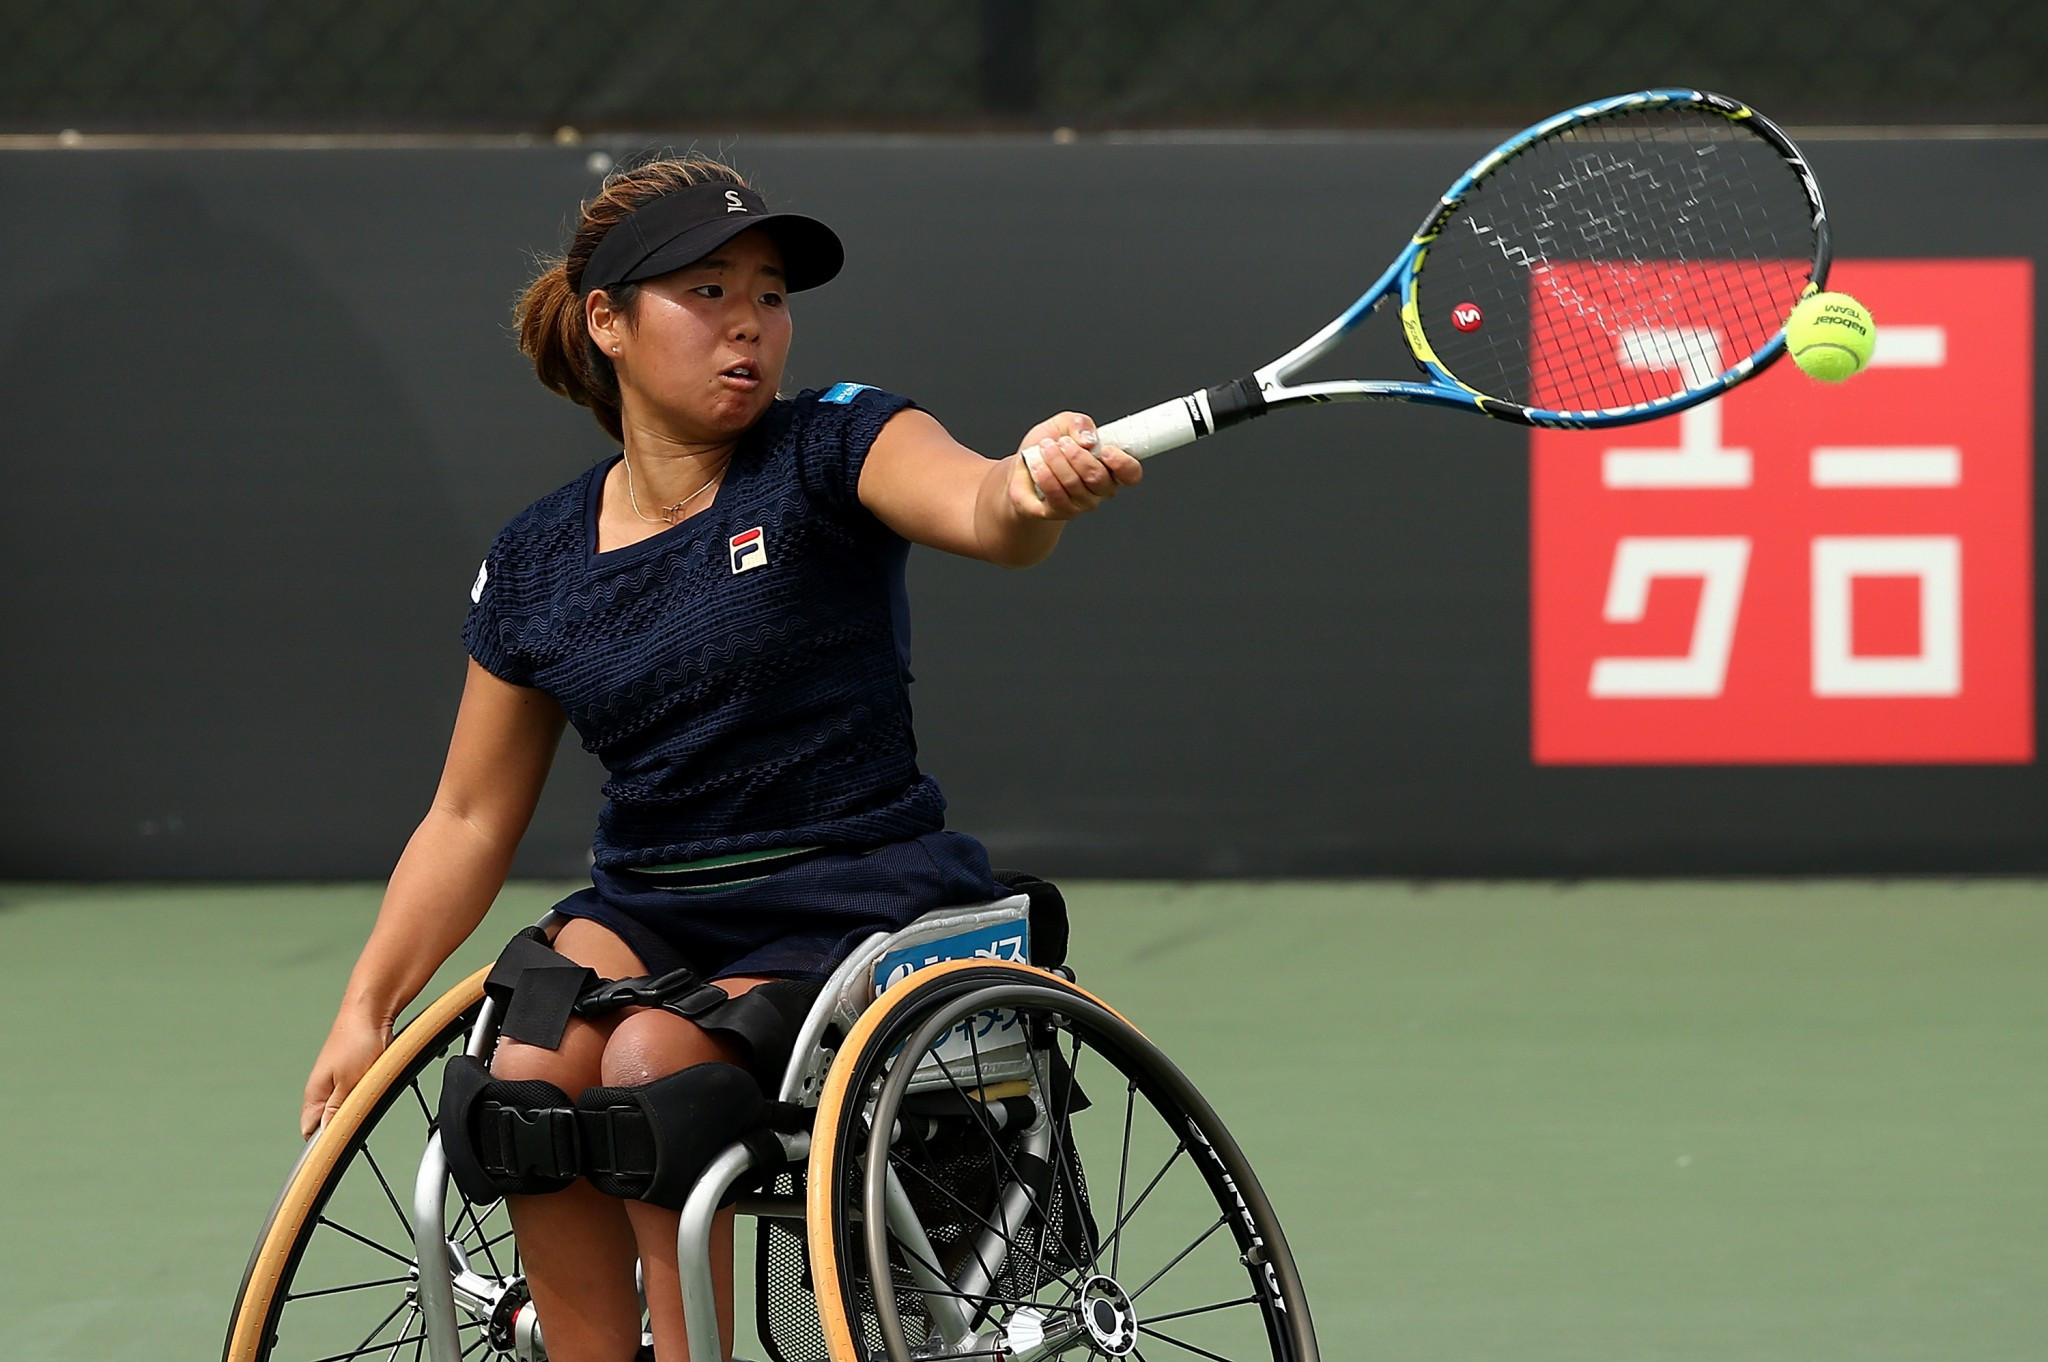 Japan's Yui Kamiji is the only non-Dutch player in the women's singles semi-finals ©Getty Images